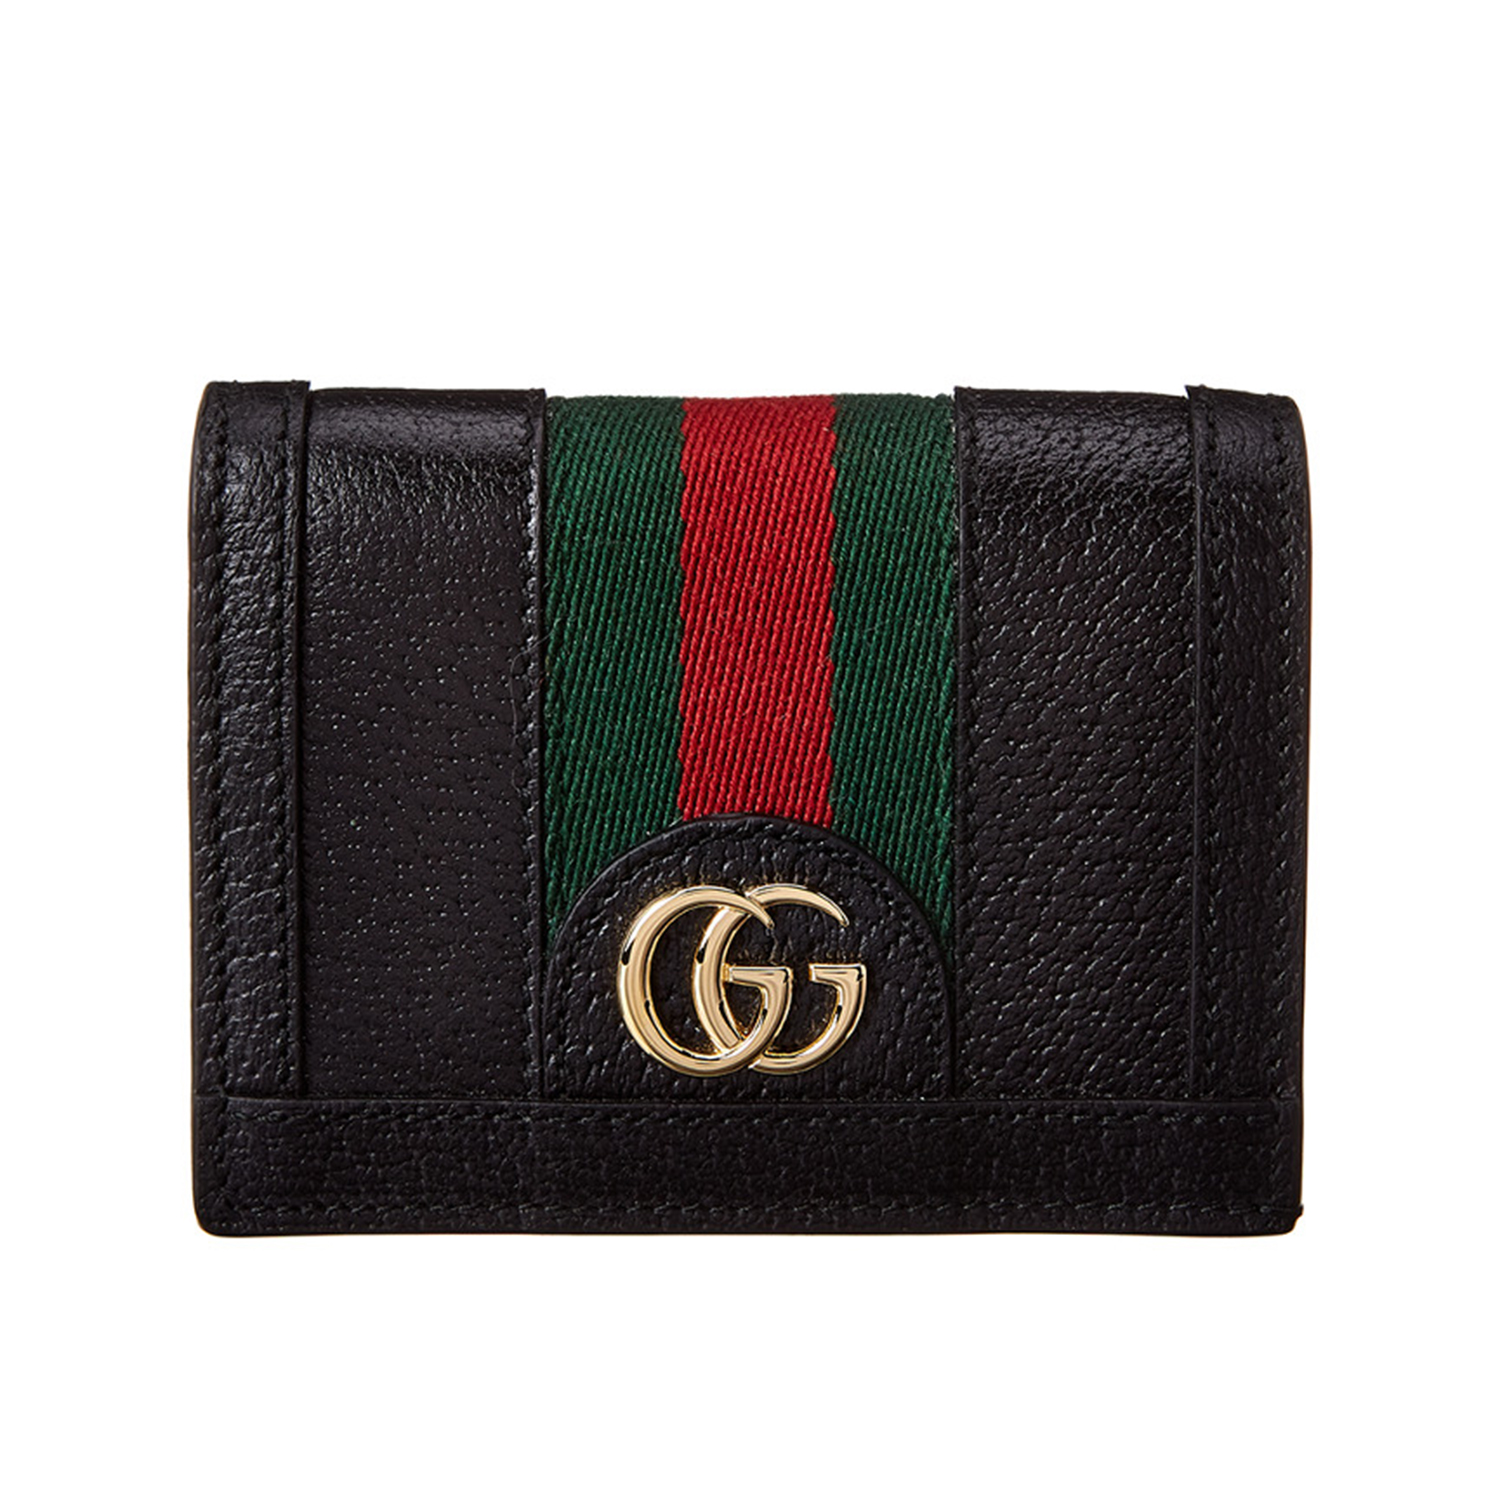 Gucci Ophedia Leather & Supreme Canvas Card Case